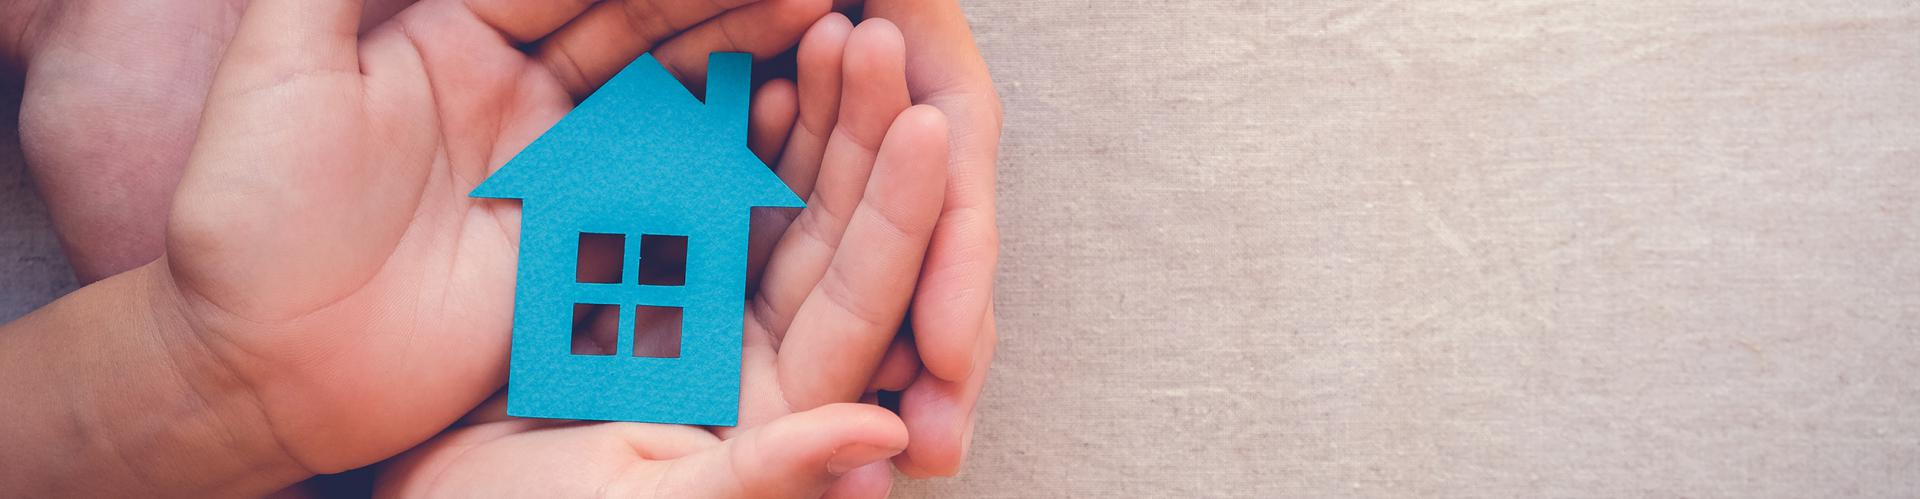 Child and adult holding blue paper image of a home